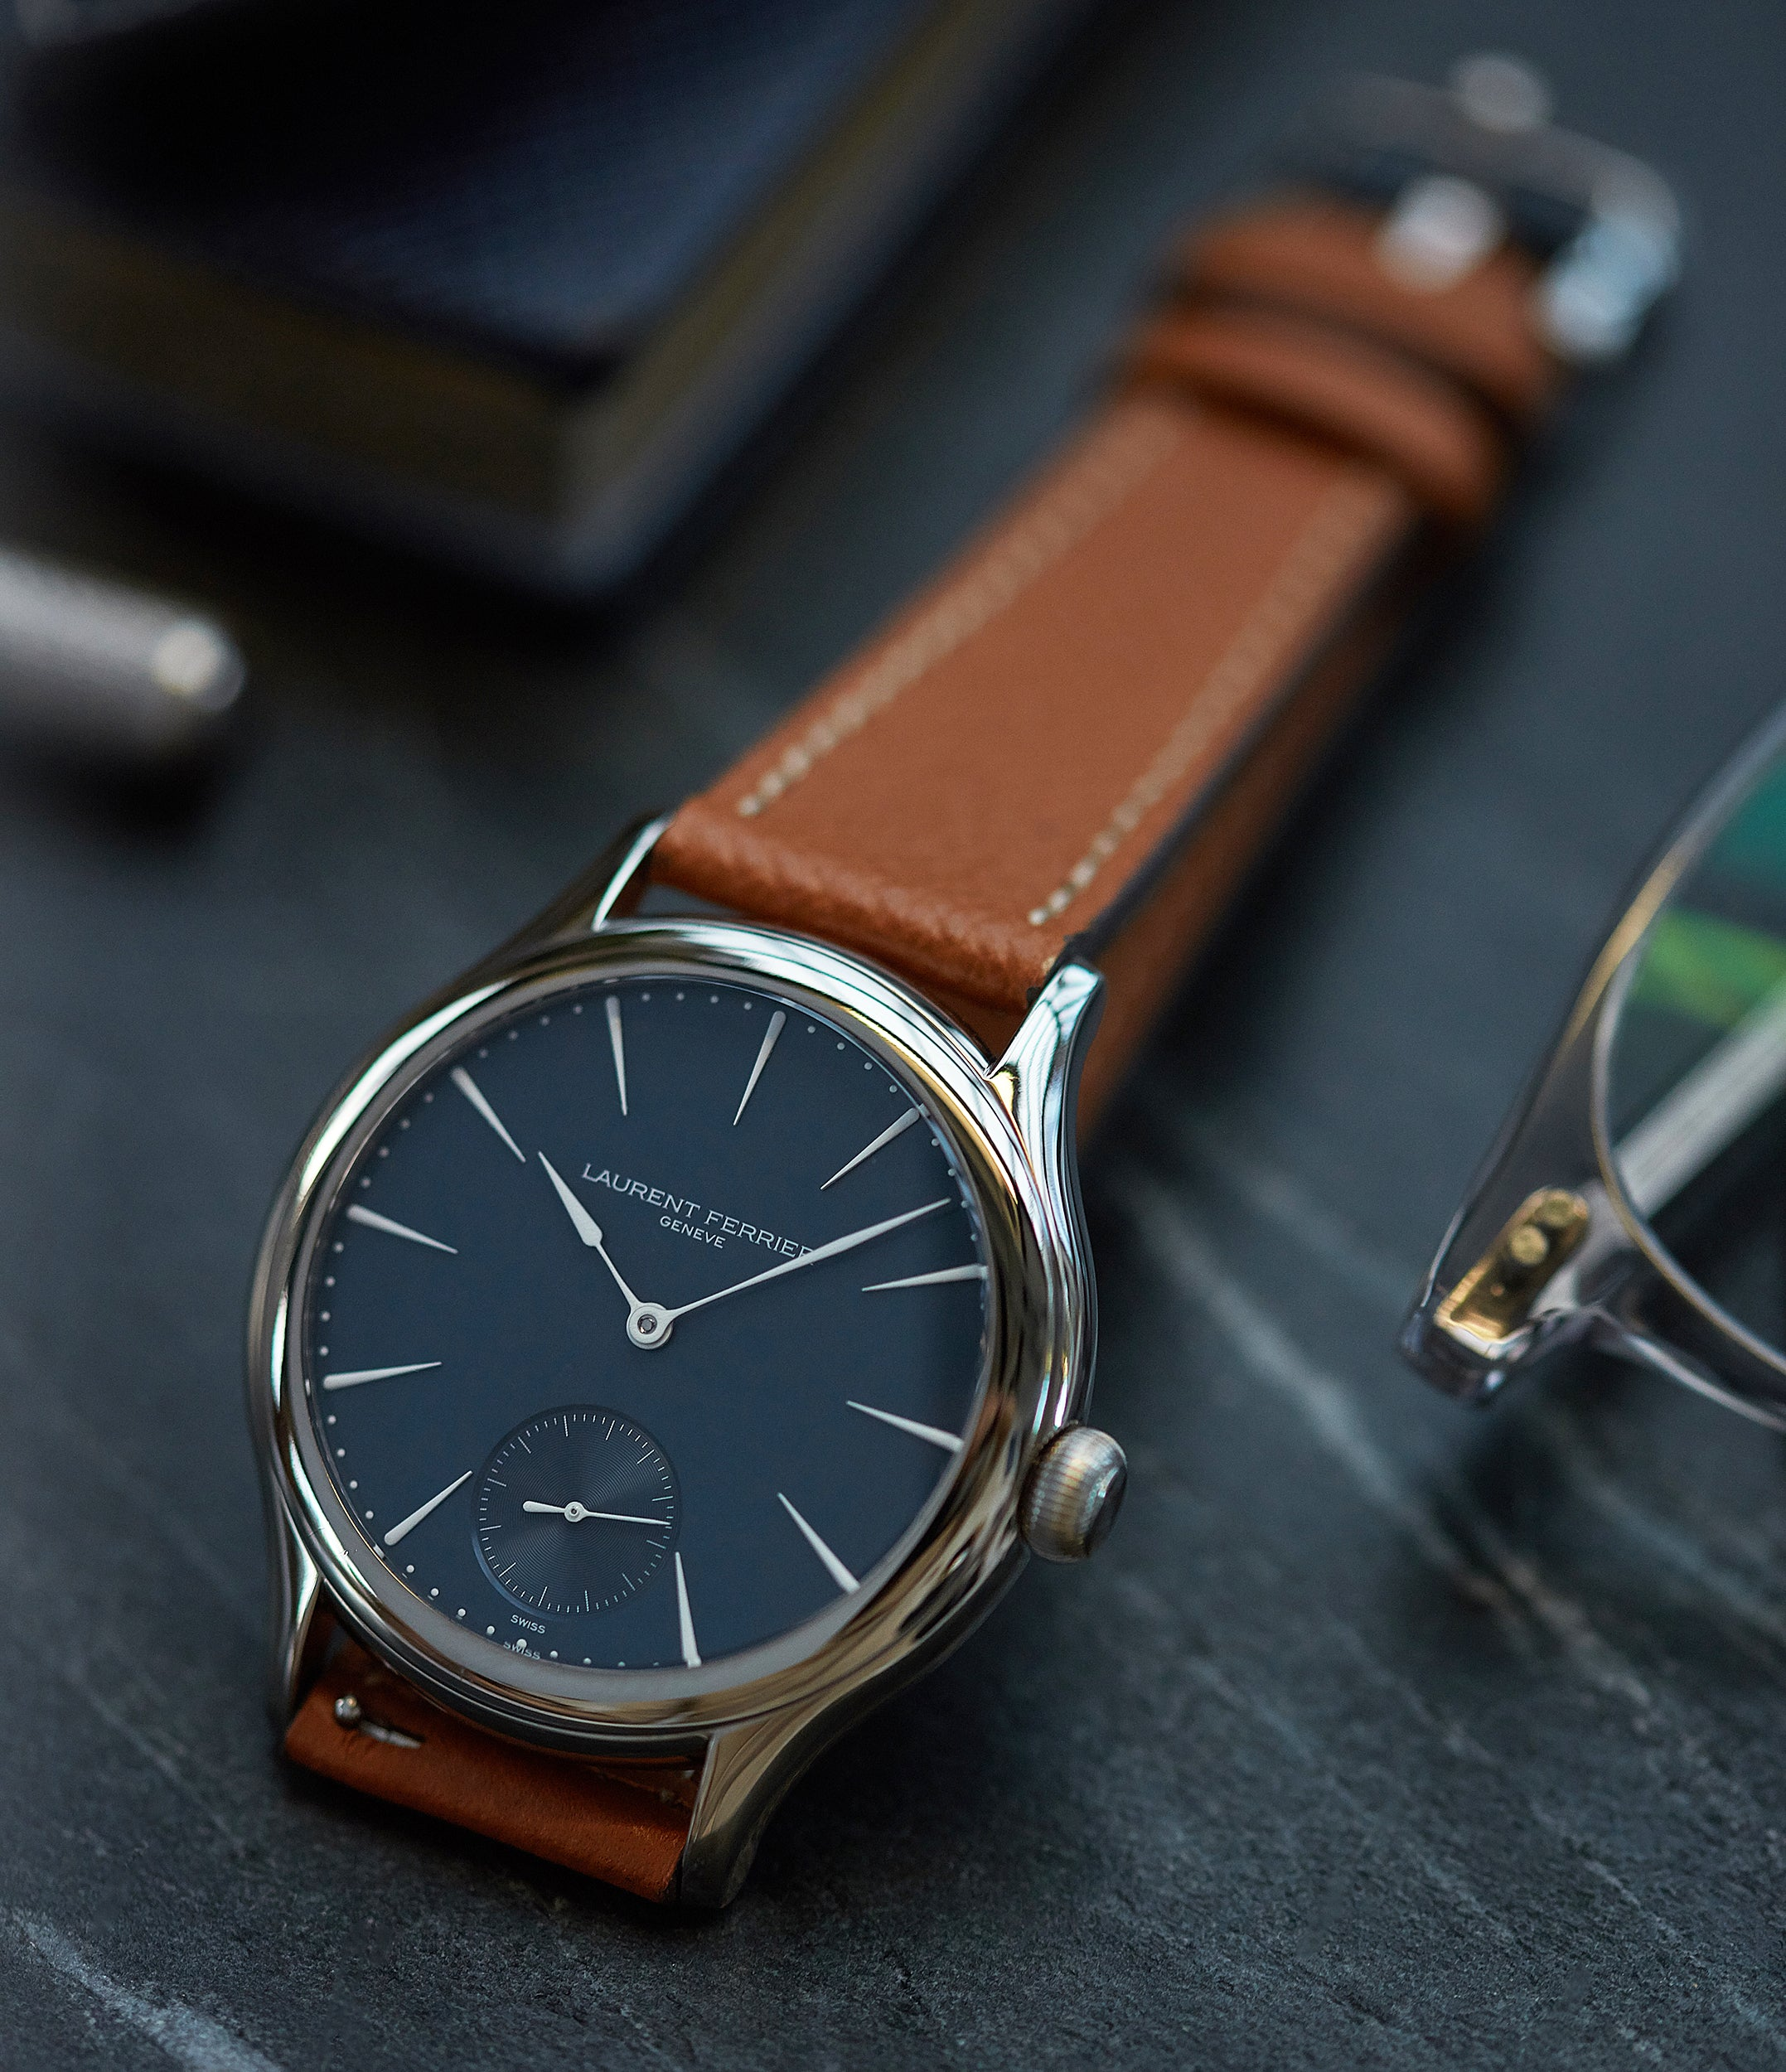 buying Laurent Ferrier Galet Micro-Rotor LF229.01 blue dial white gold watch for sale online at A Collected Man London UK approved seller of independent watchmaker Laurent Ferrier